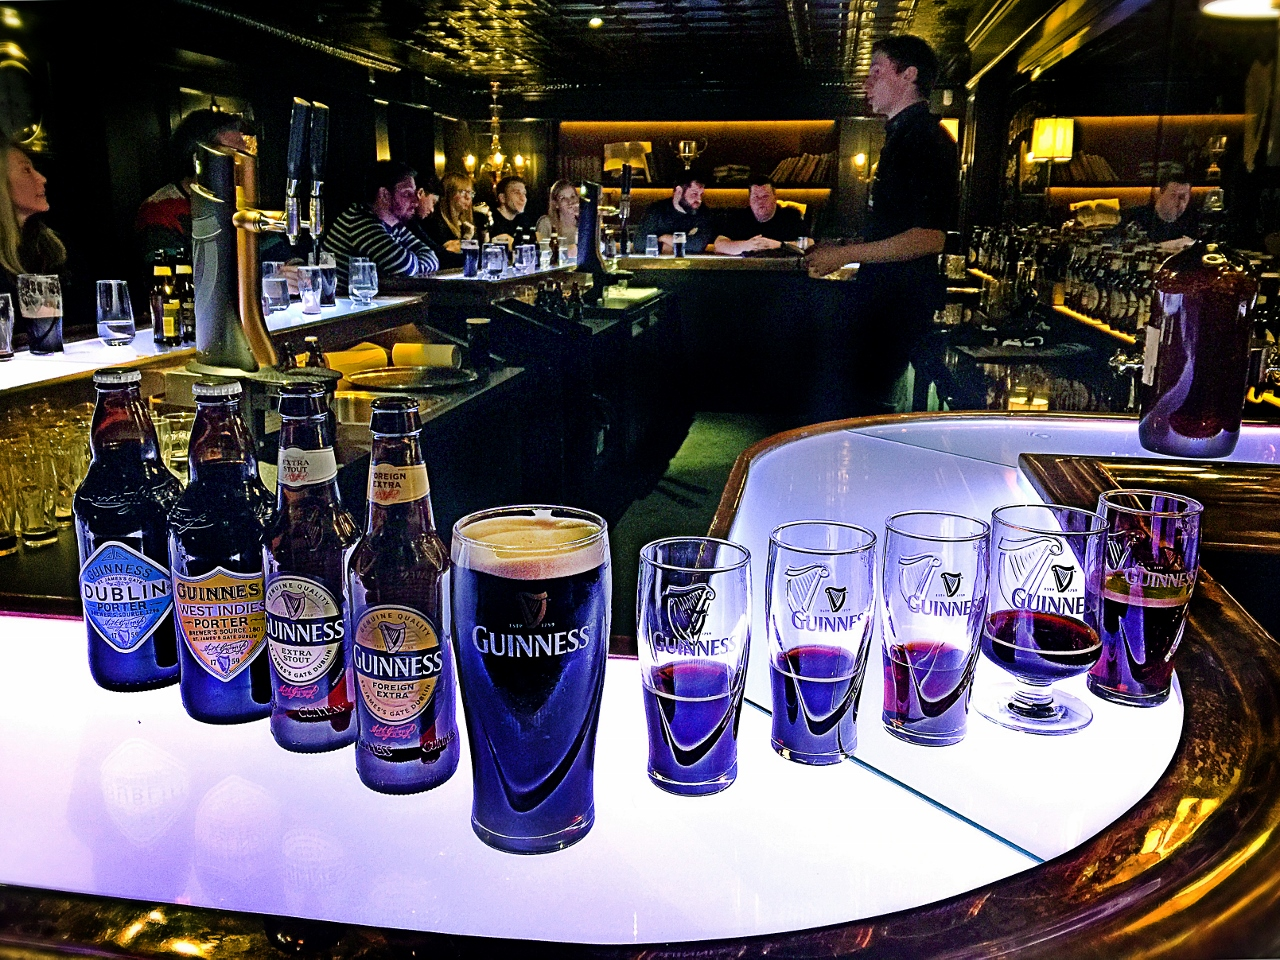 Tasting Guinness at the Connoisseur Experience in Dublin Ireland